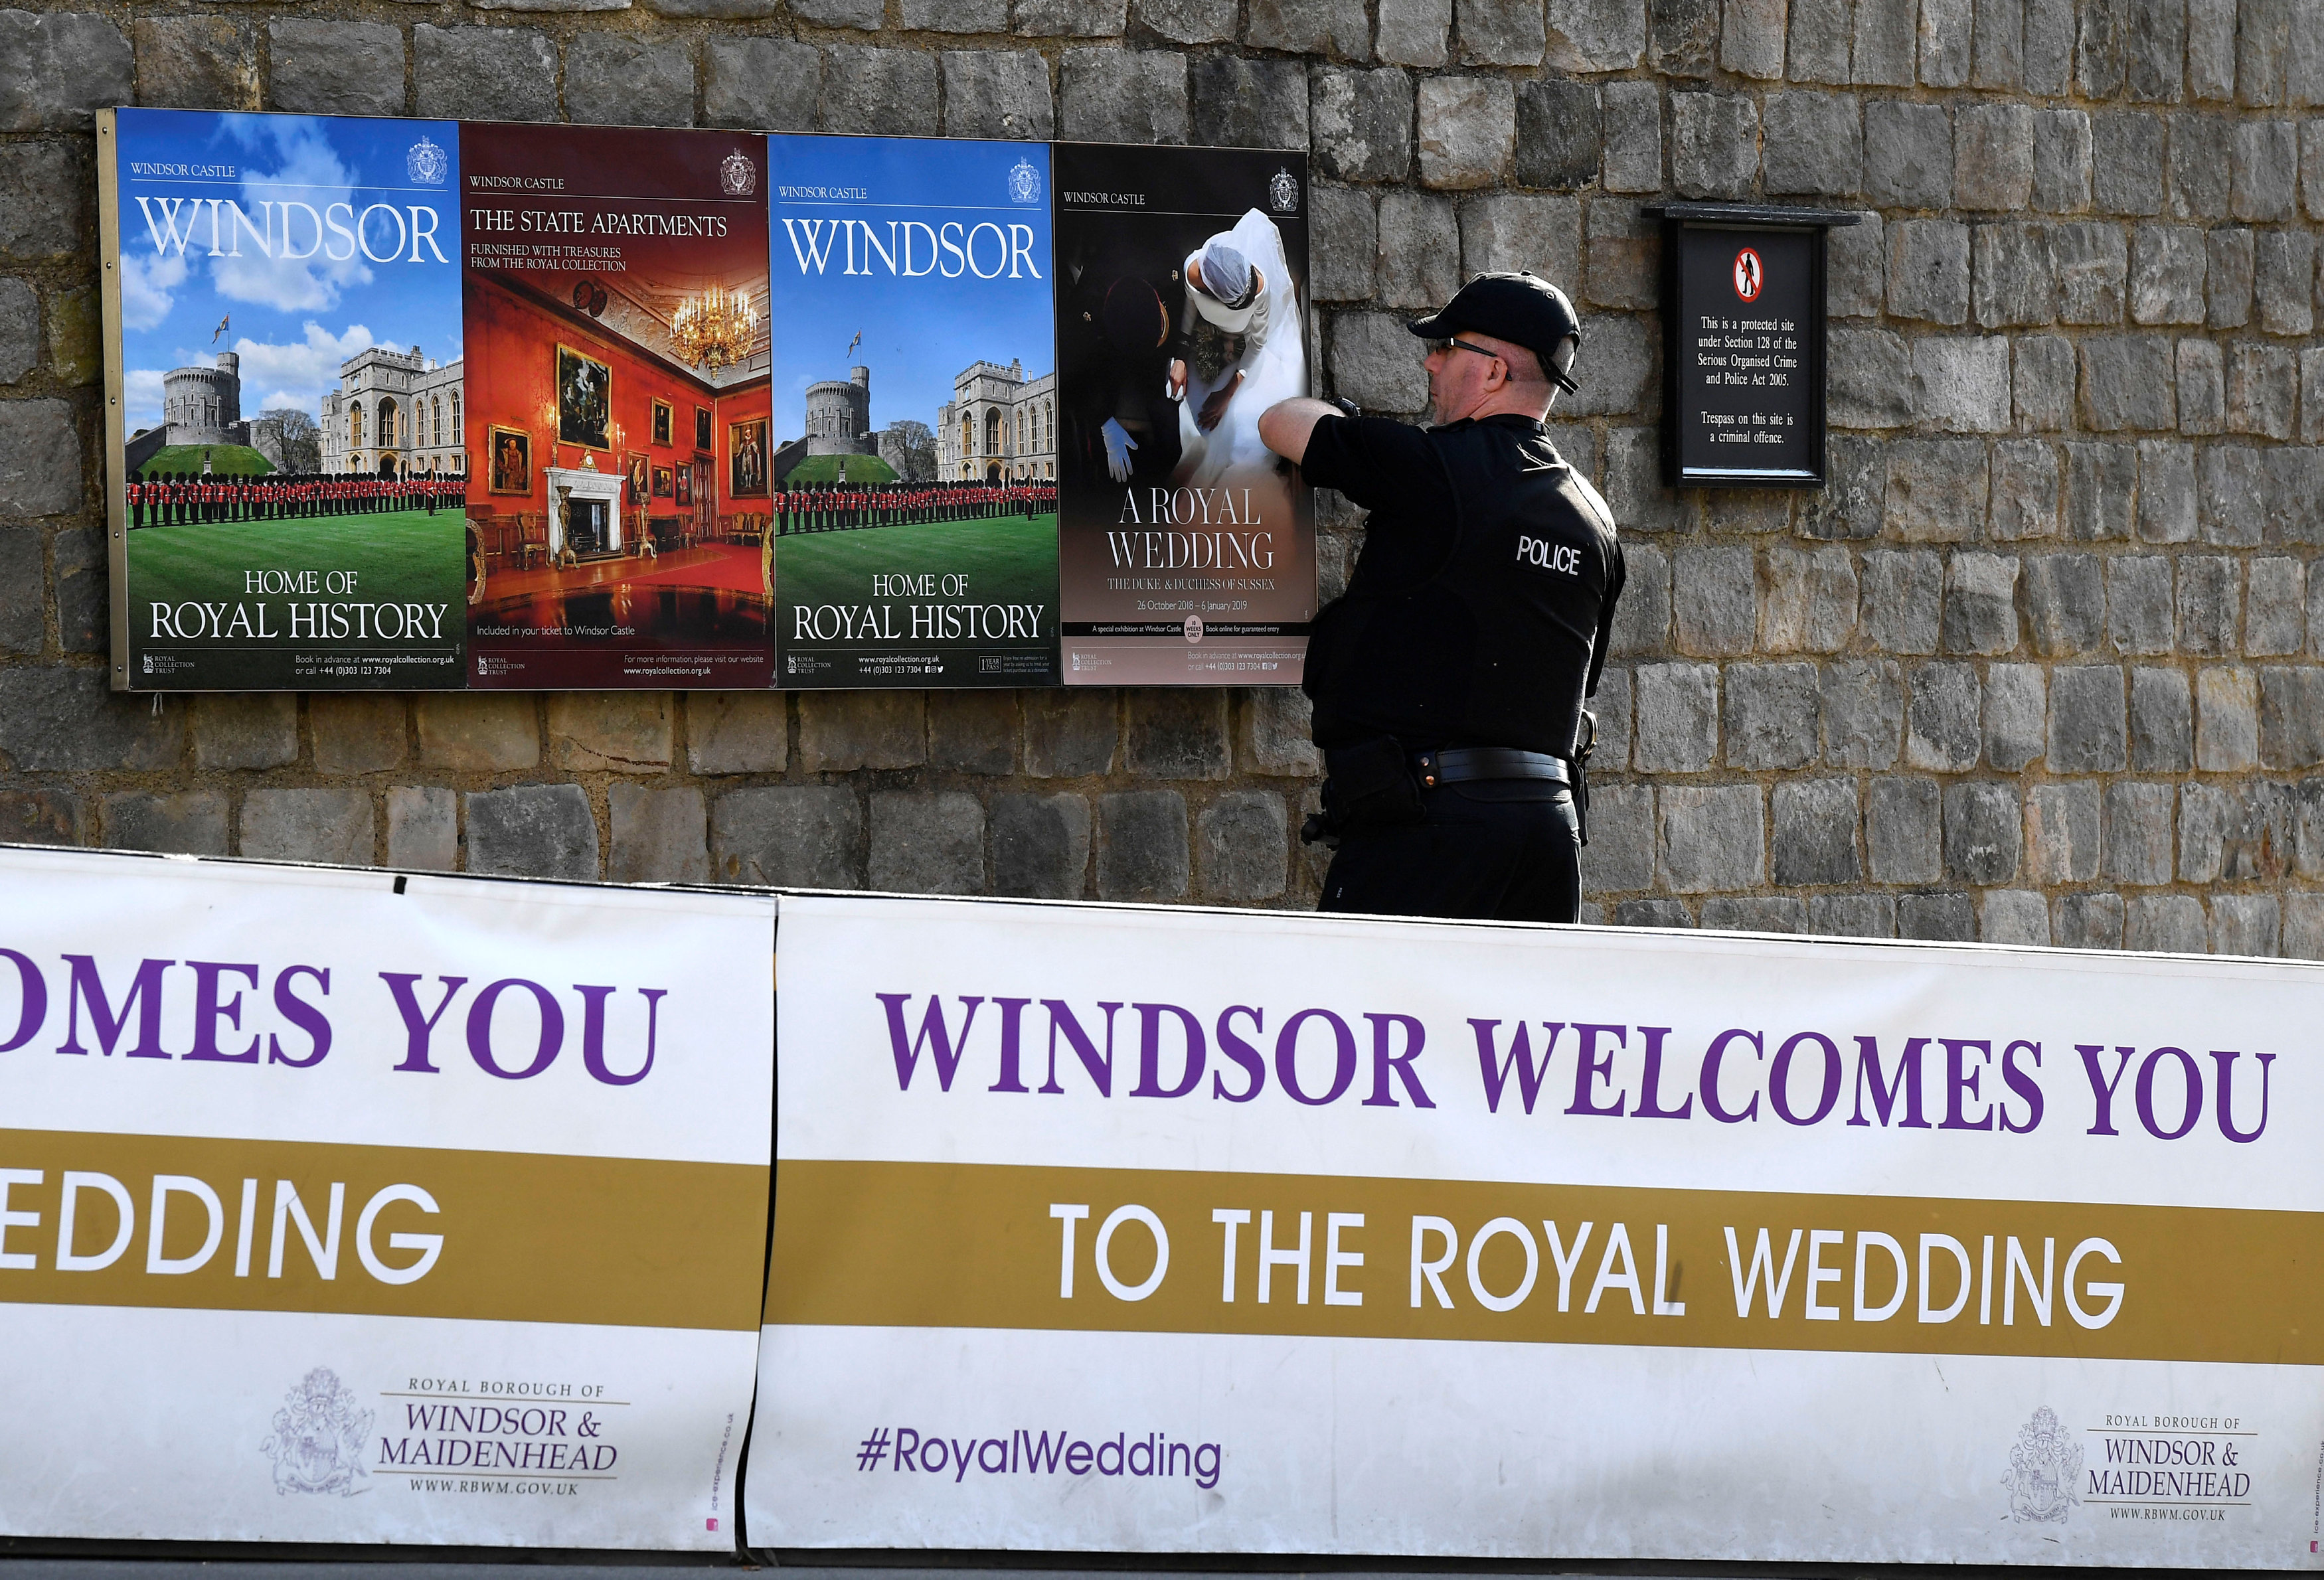 A police officer makes security checks around the castle, on the day before the royal wedding of Britain's Princess Eugenie and Jack Brooksbank, in Windsor